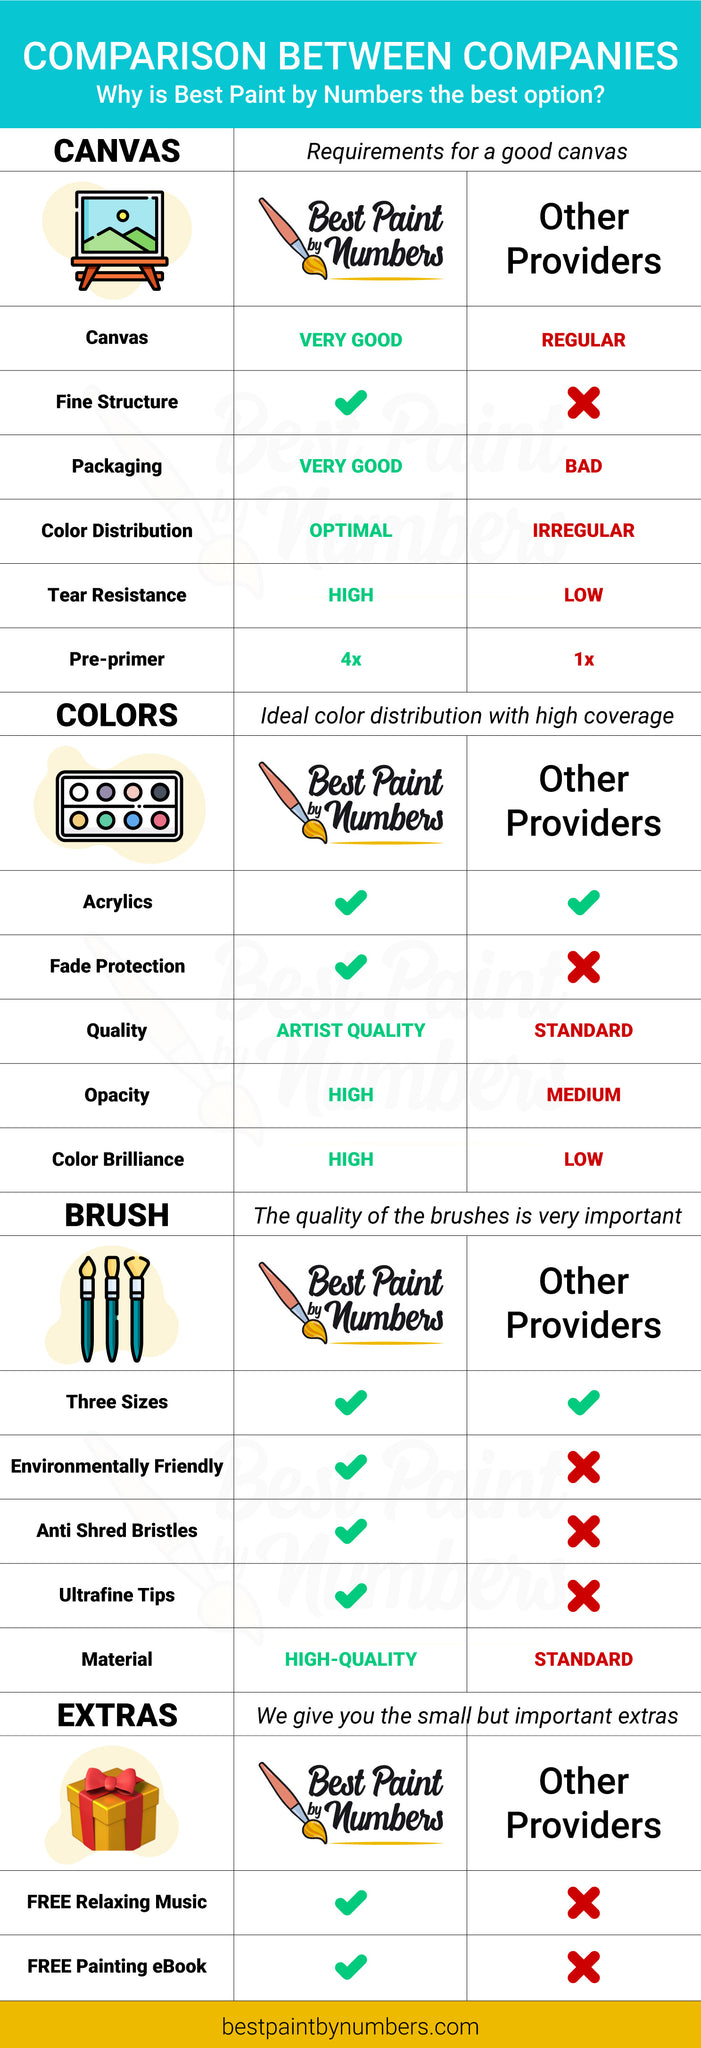 Why you should choose best paint by numbers for your custom paint by number kit.